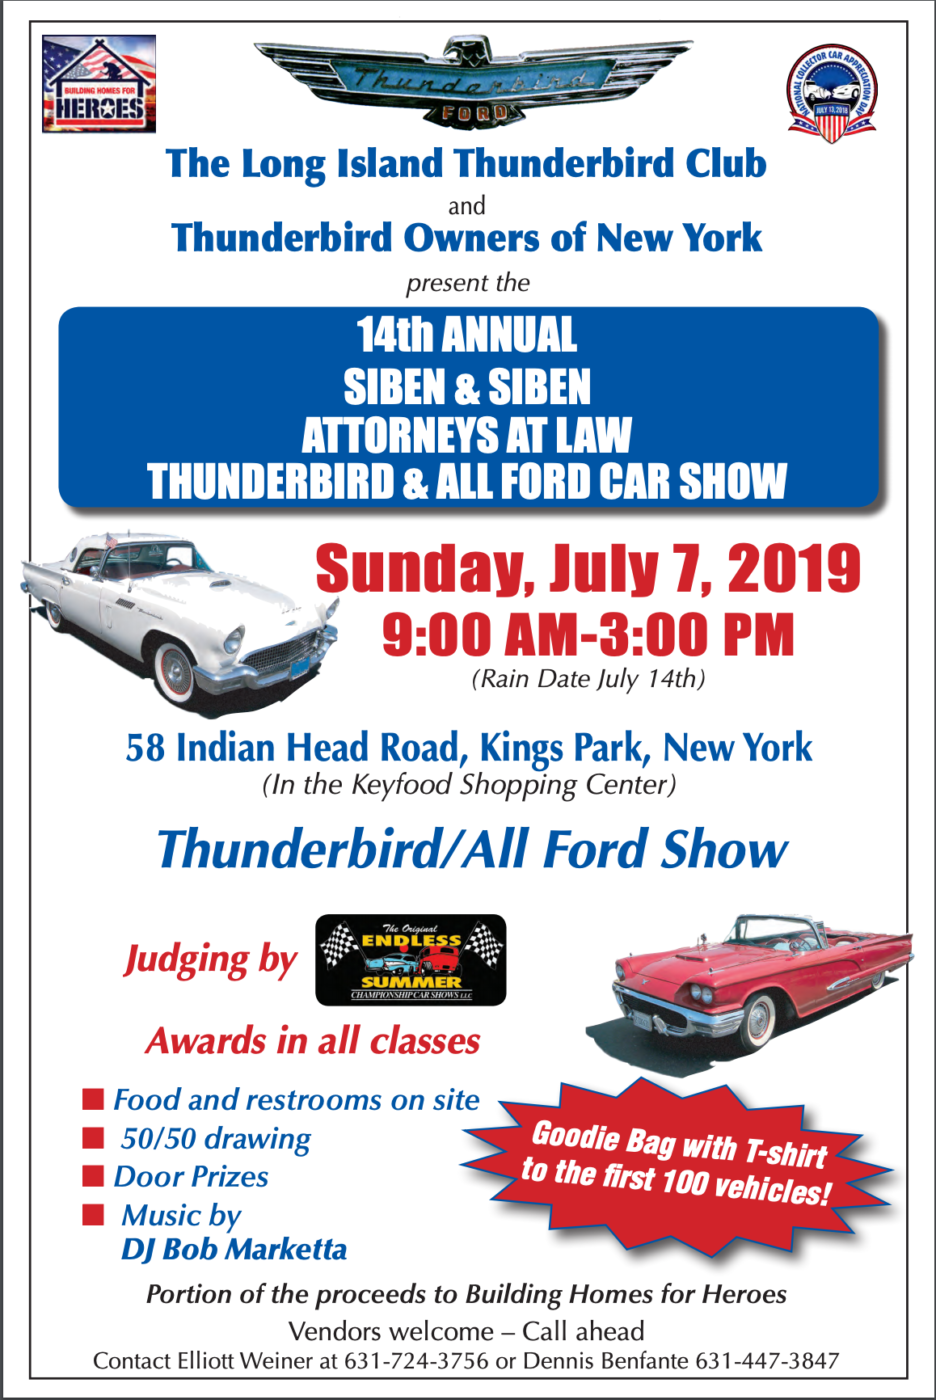 2019 Thunderbird Club Car Show / Fundraiser @ Keyfood Shopping Center | Kings Park | New York | United States